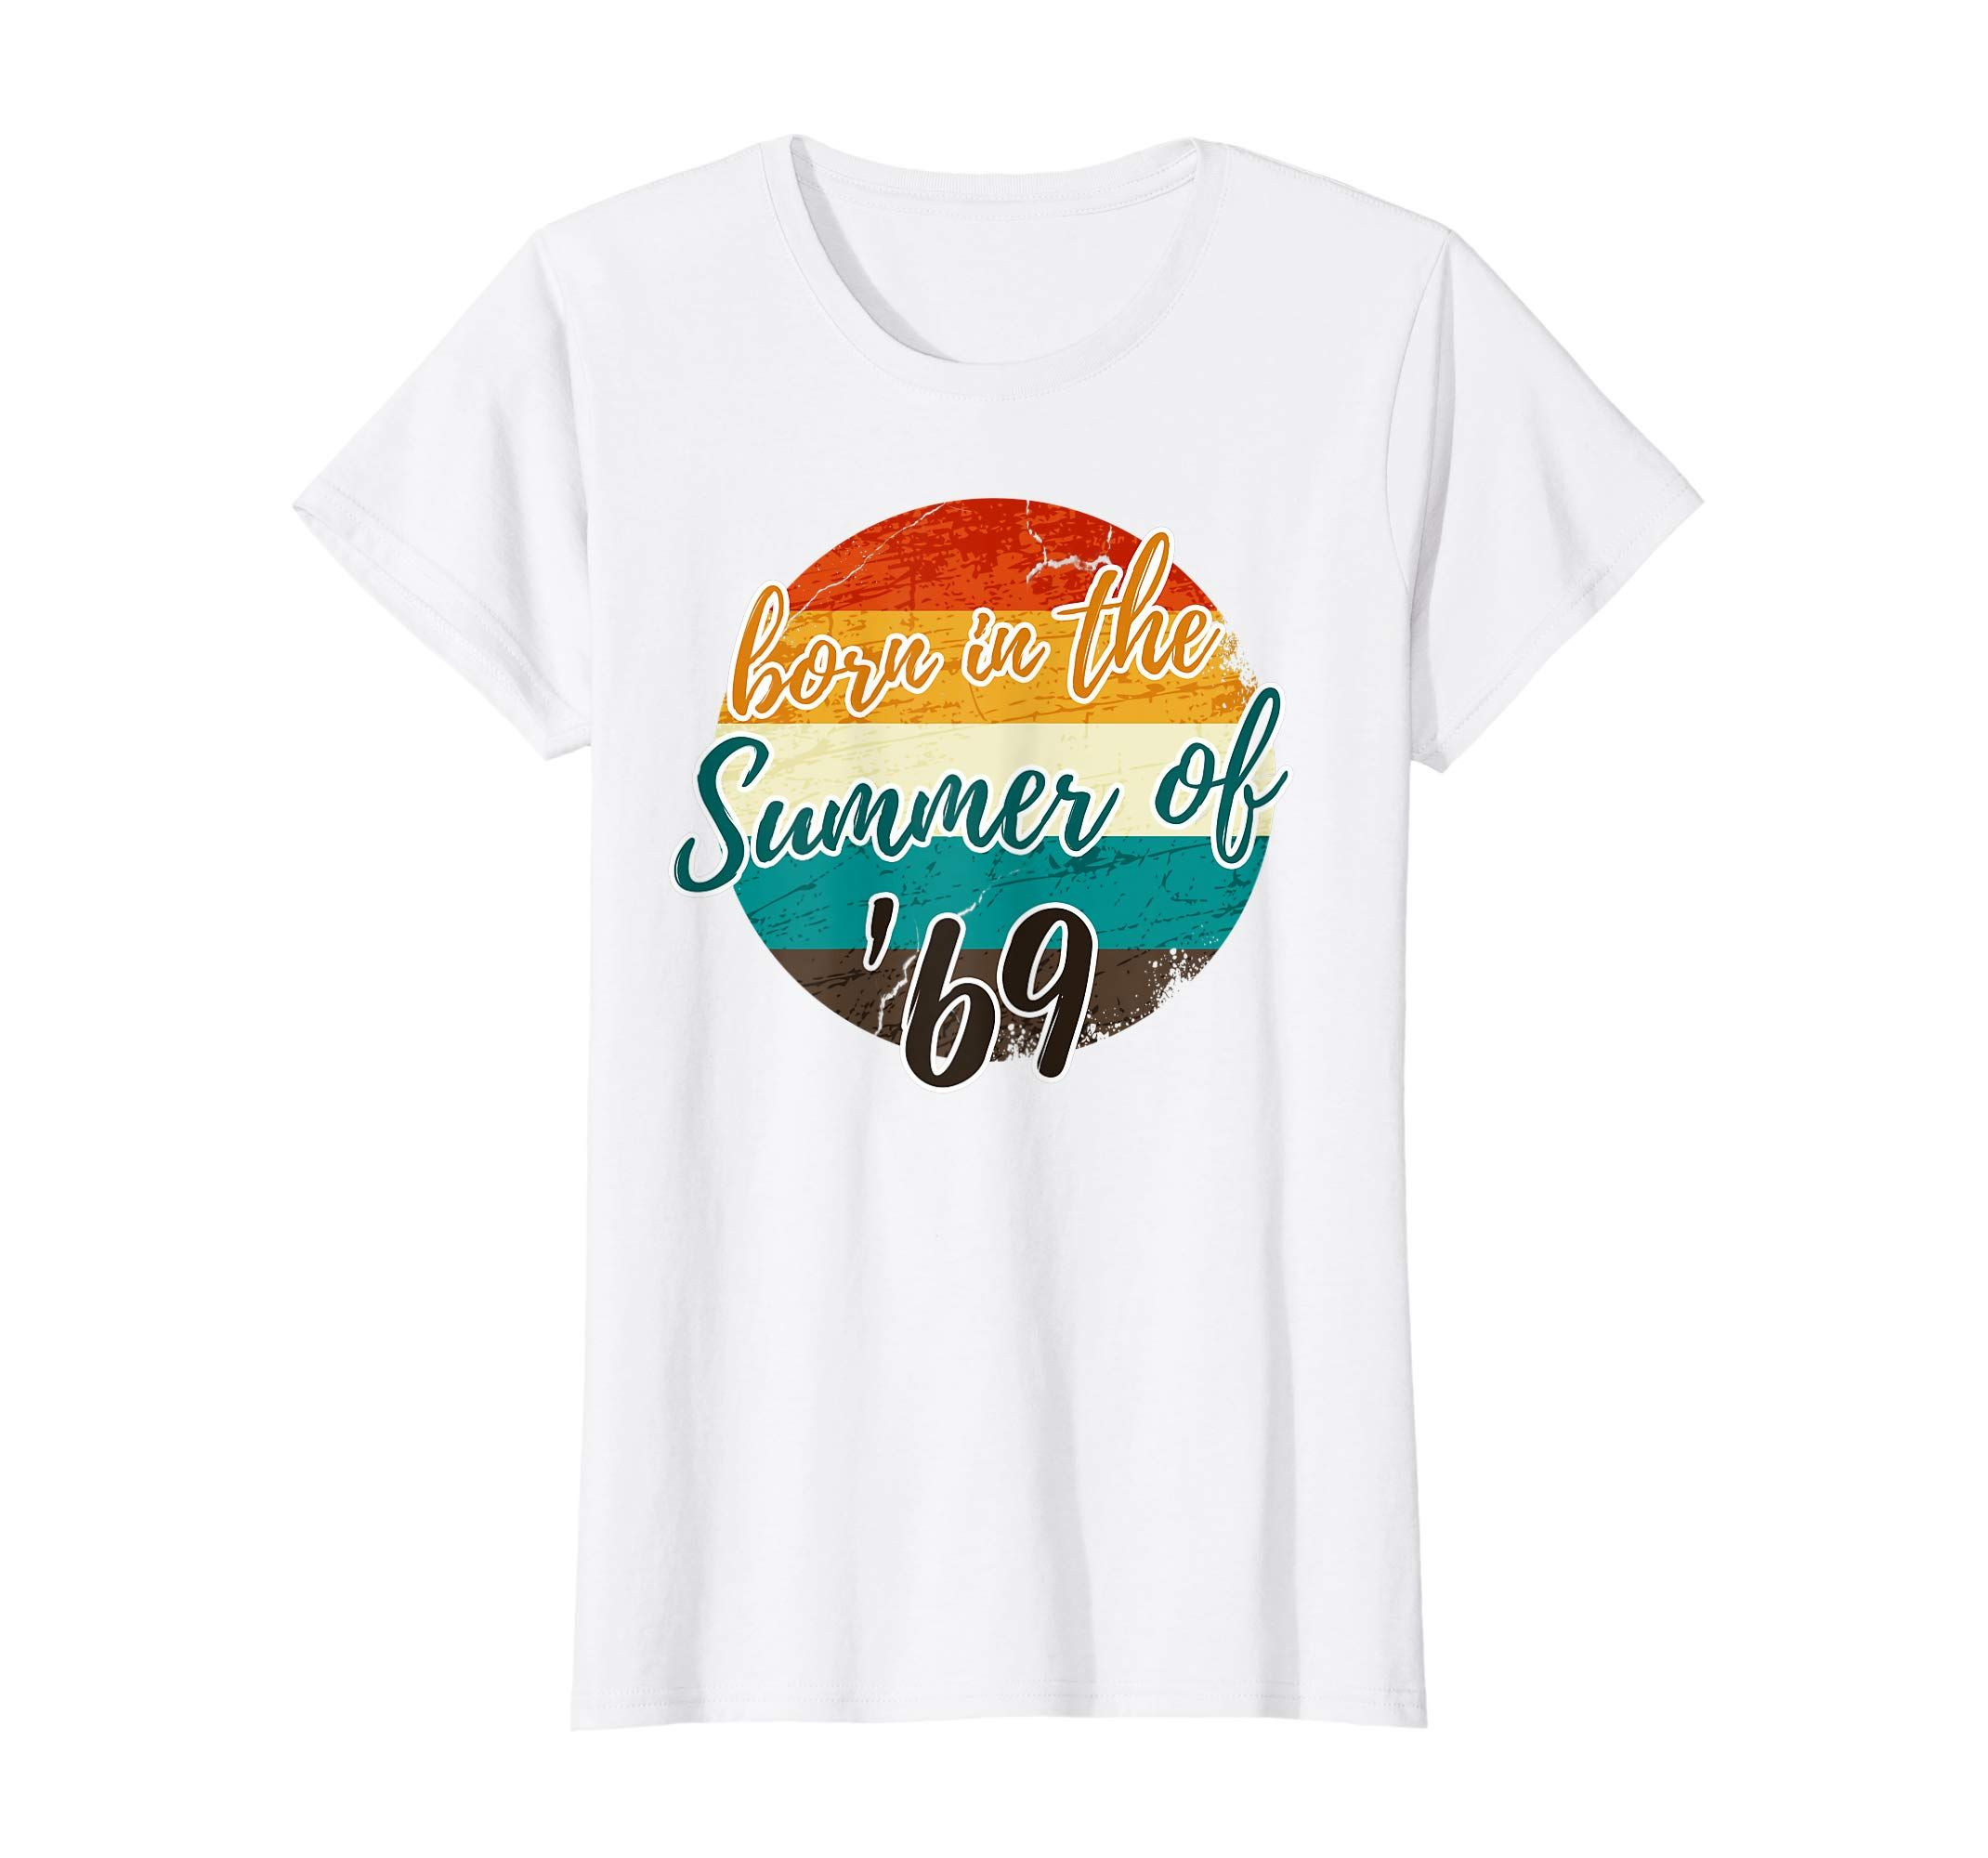 50th Birthday Summer of 69 T Shirt Gift Mom Dad Vintage-Protee #moms50thbirthday